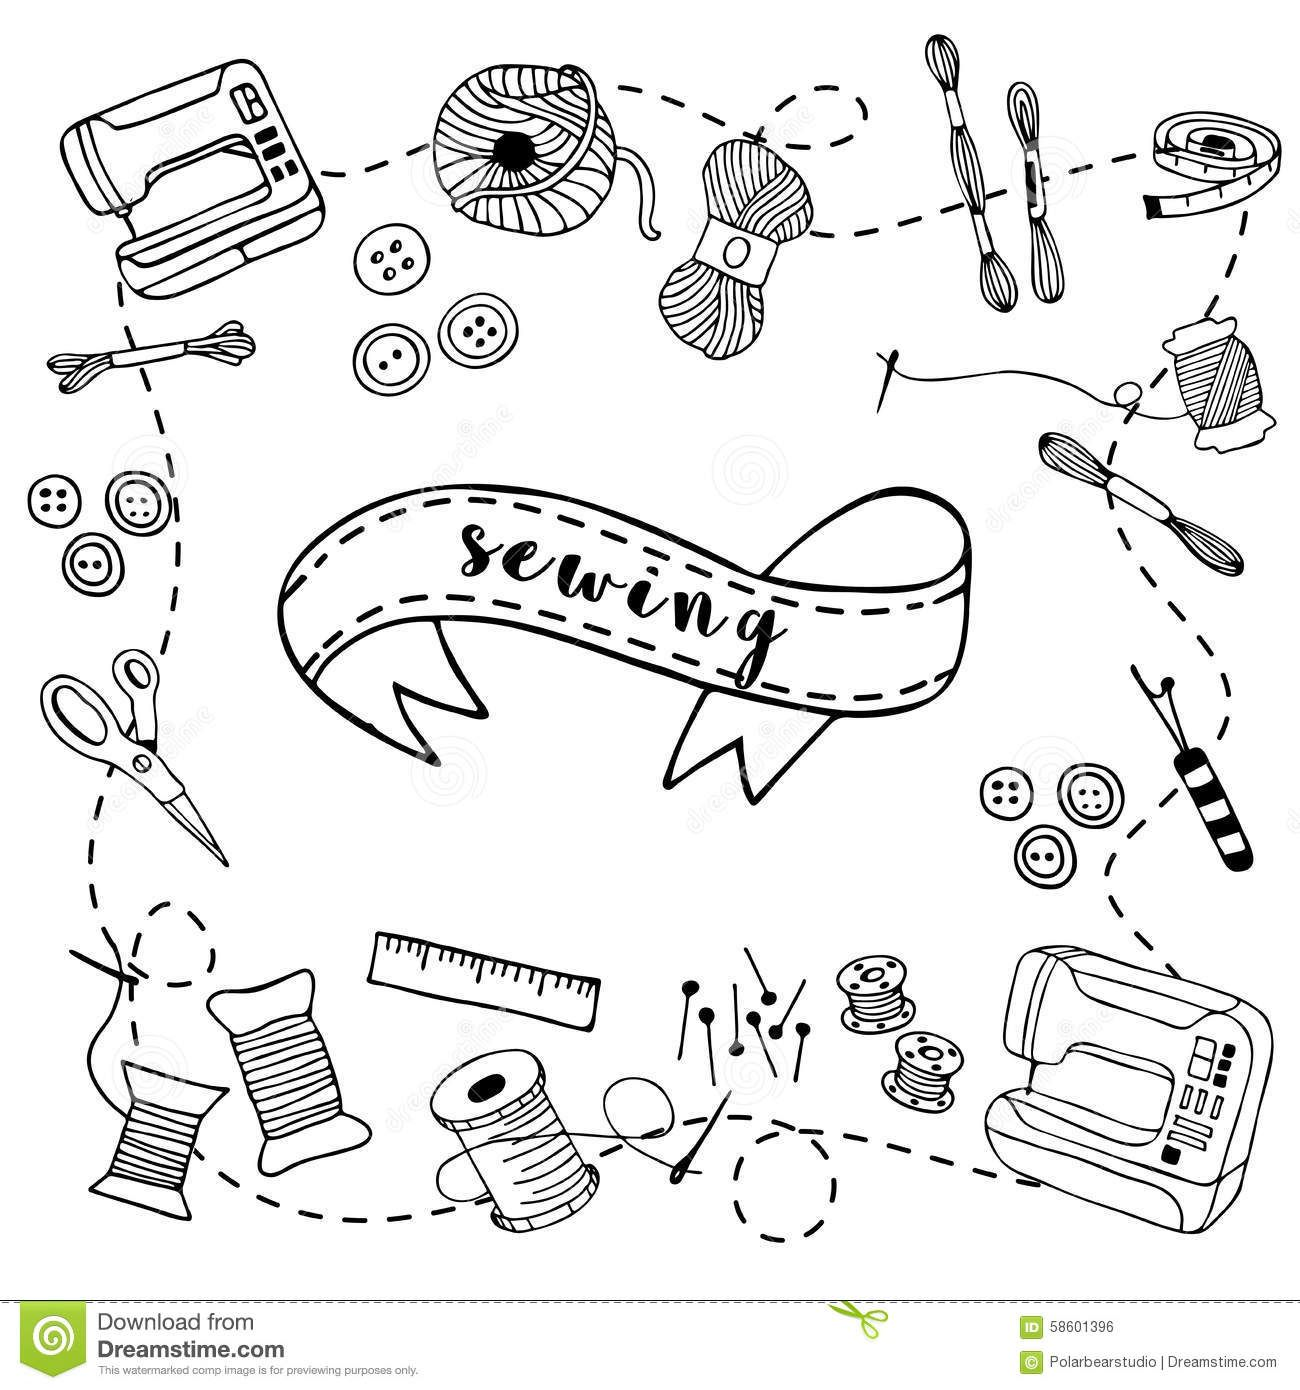 Sewing doodle hand drawn stock vector. Illustration of